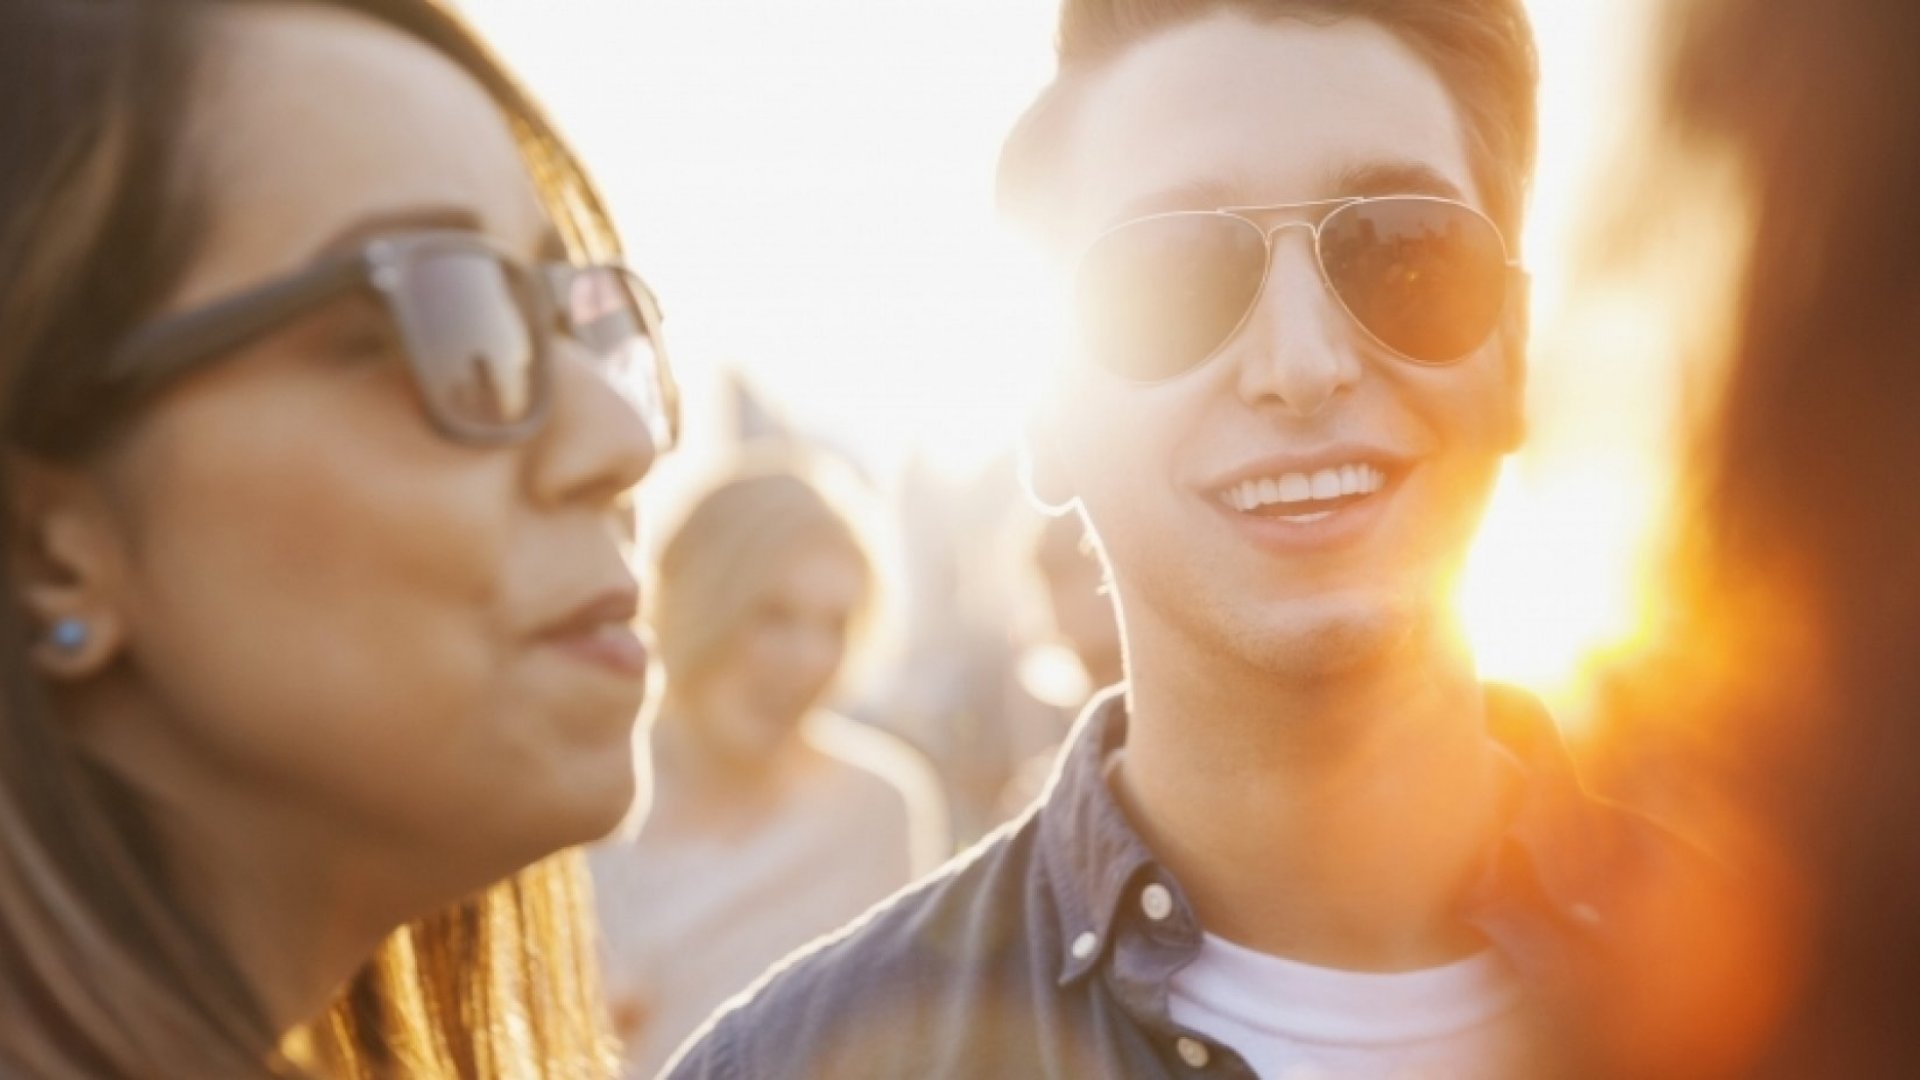 Why You Need to Get Good at Small Talk (Even if You Hate It)